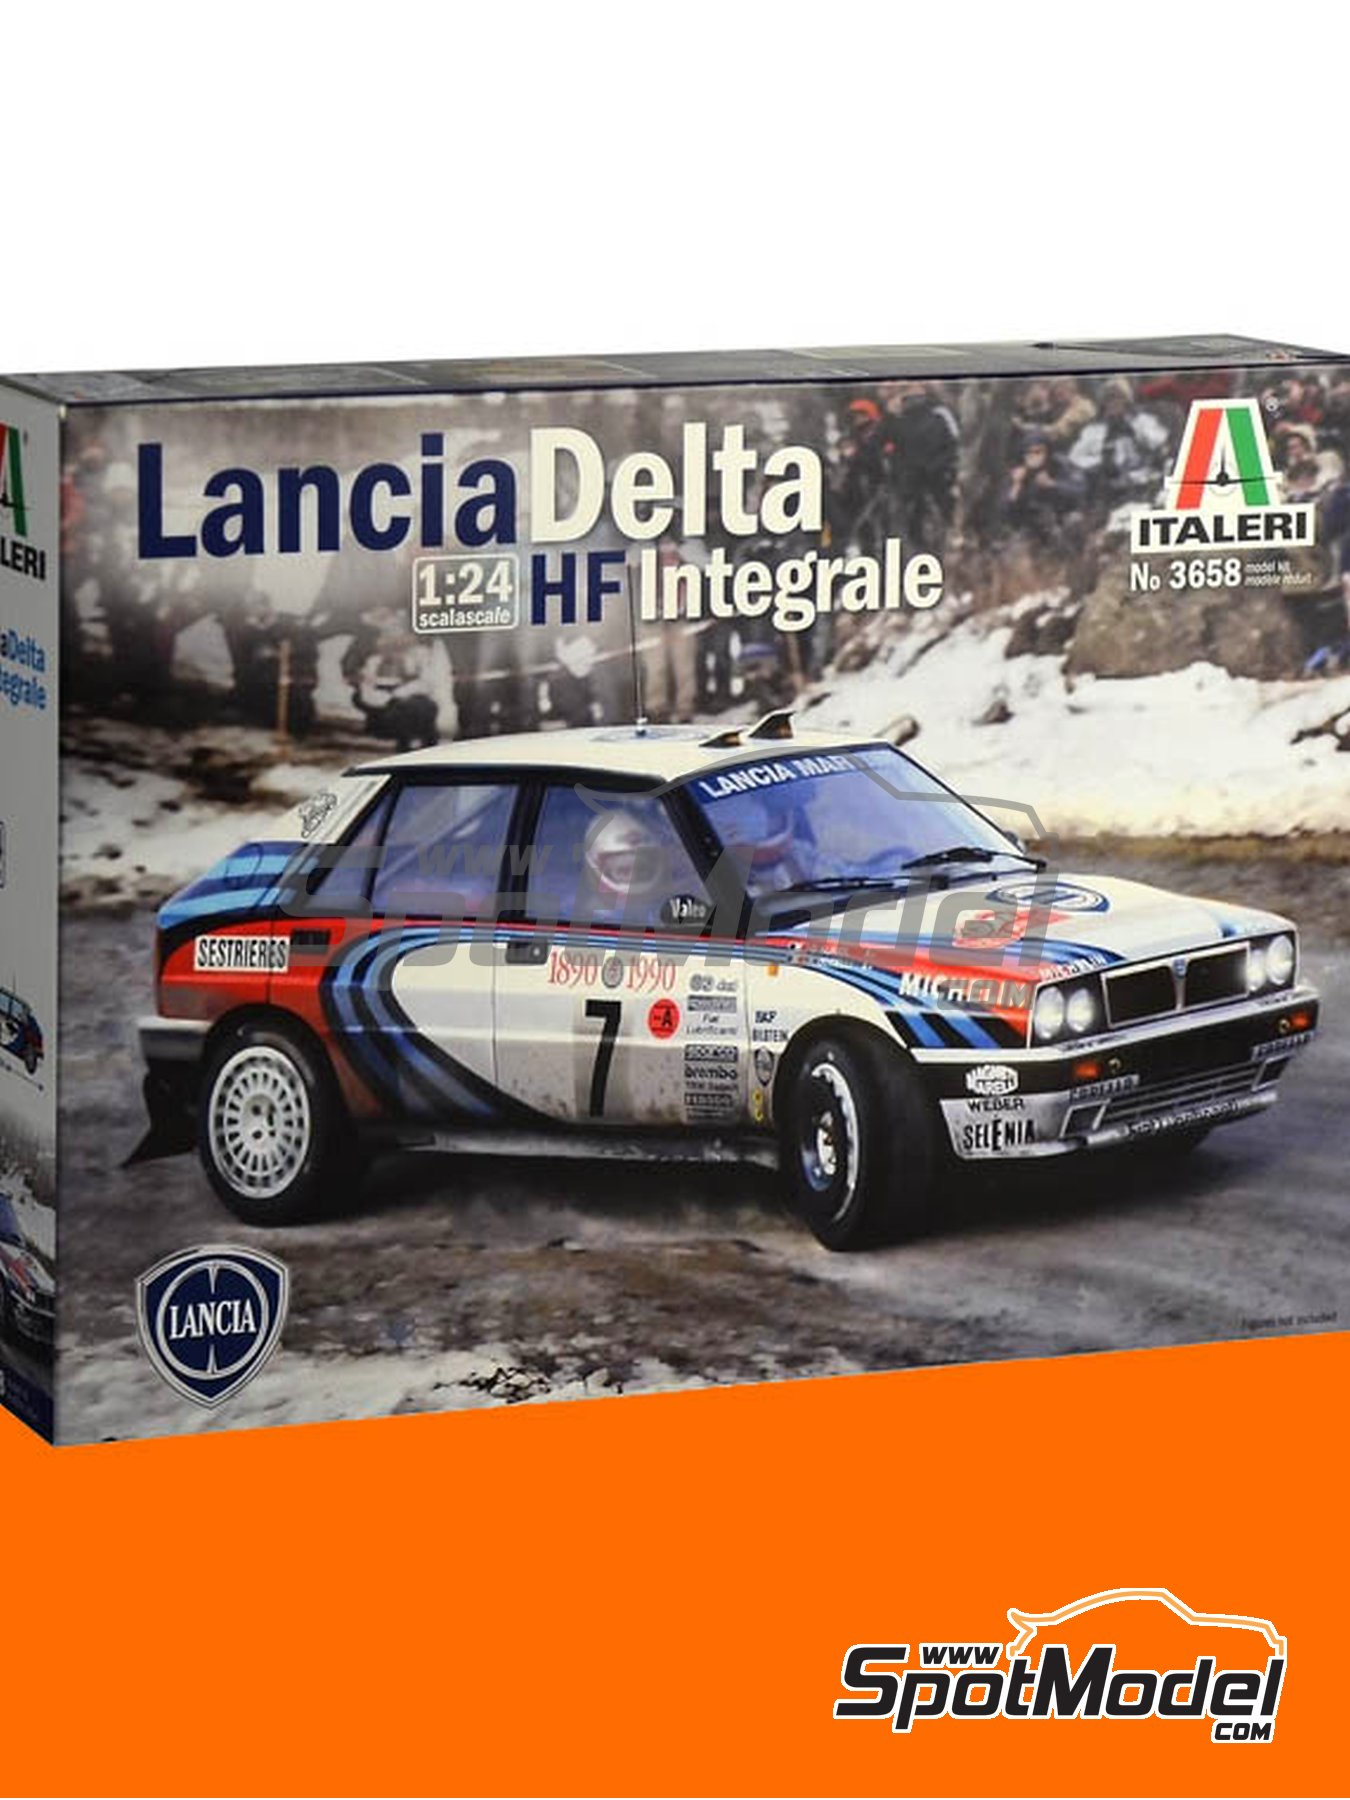 Lancia Delta HF Integrale 16V Martini Racing Team - Montecarlo Rally 1990 and 1993 | Model car kit in 1/24 scale manufactured by Italeri (ref. 3658) image